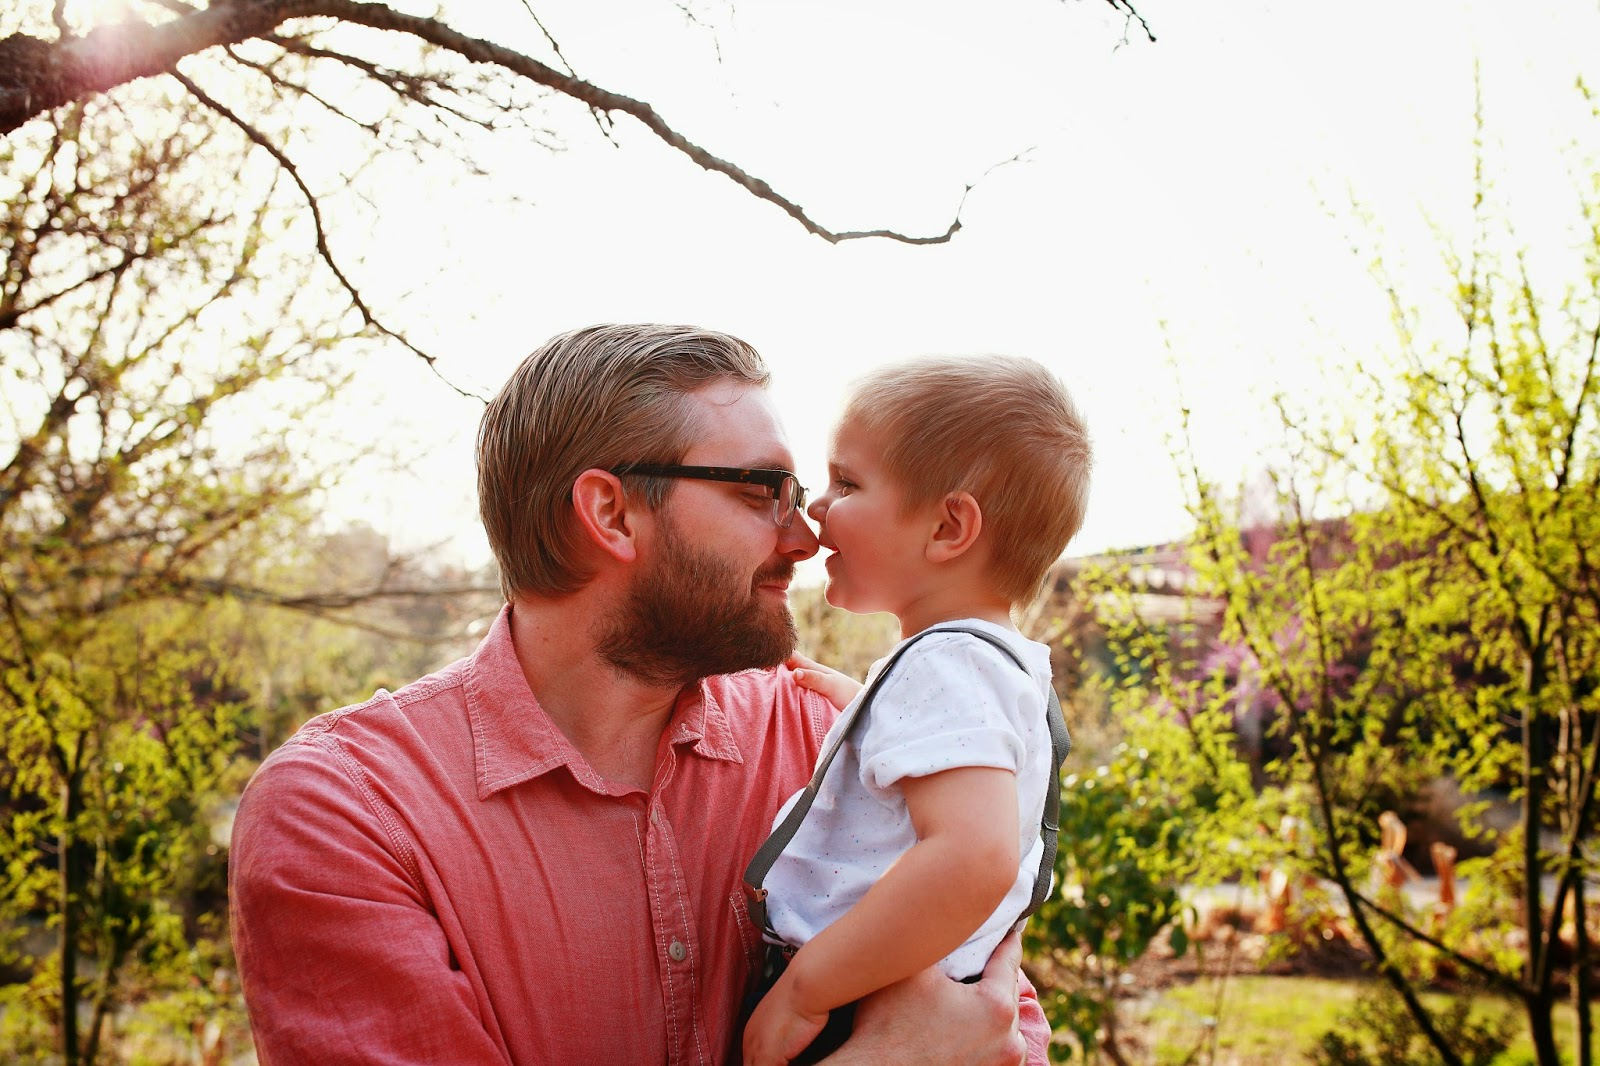 sweet-kiss-father-son